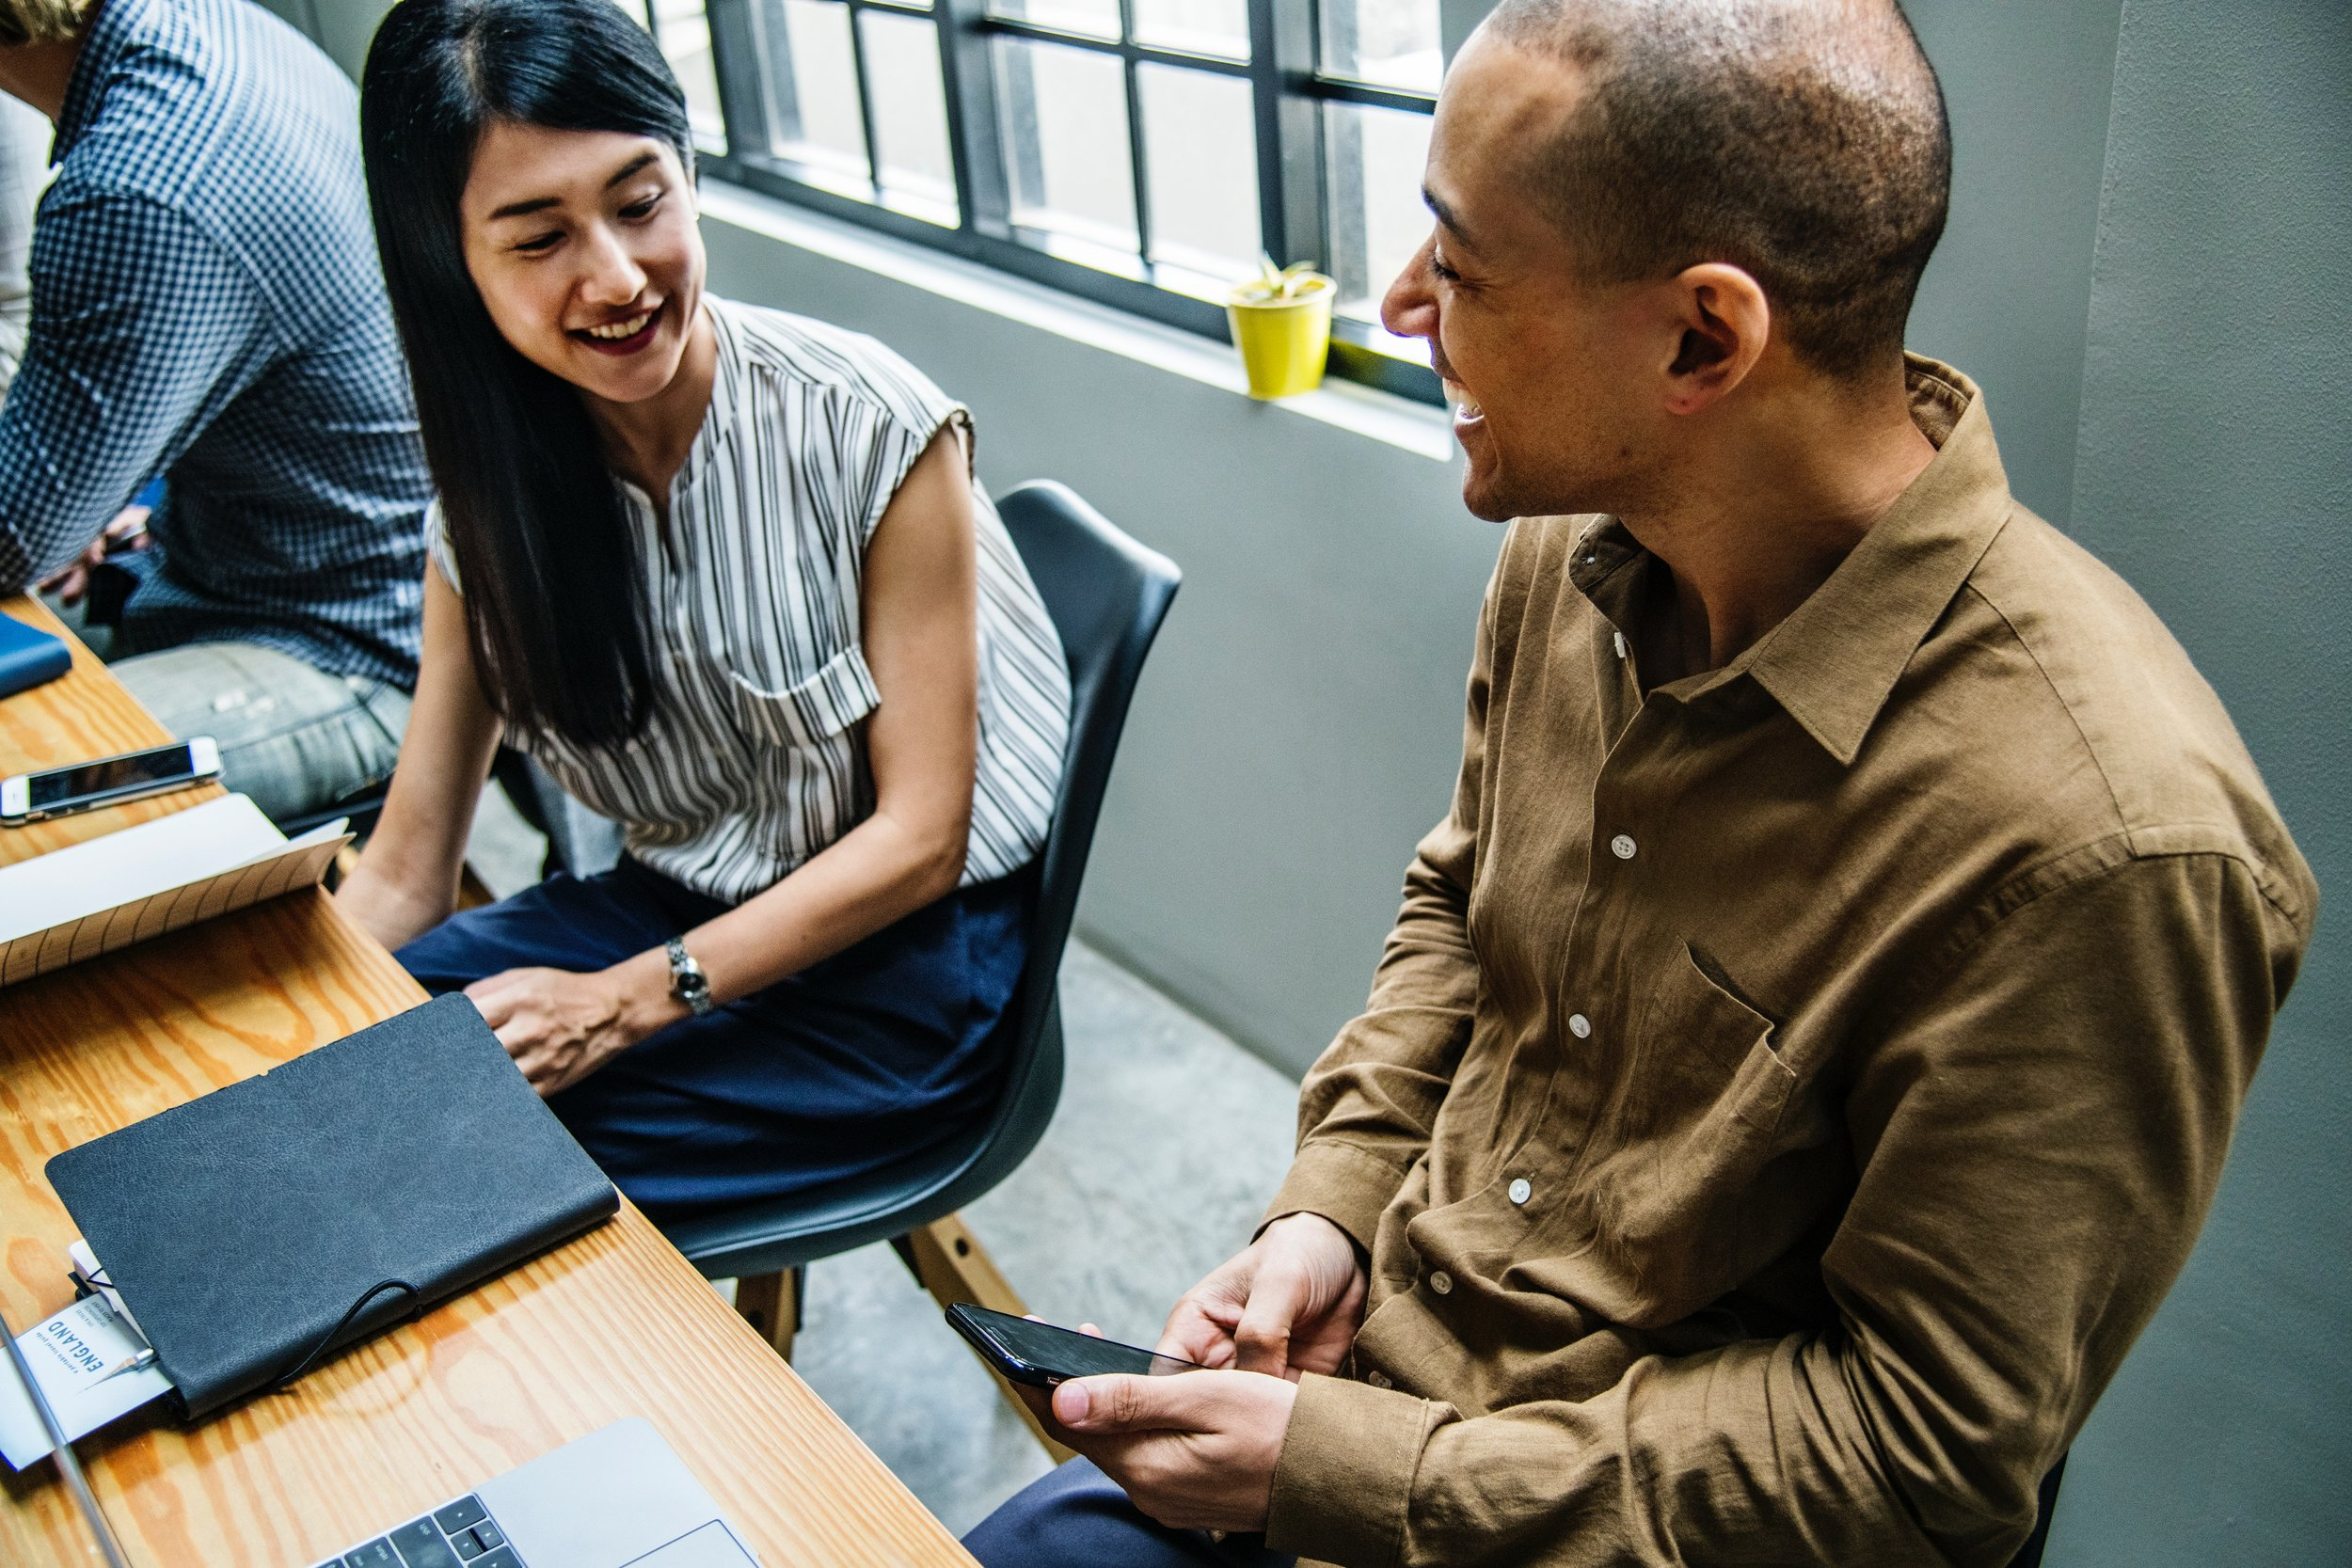 Image: Man and woman chatting at work. Photo: Photo by  rawpixel  on  Unsplash